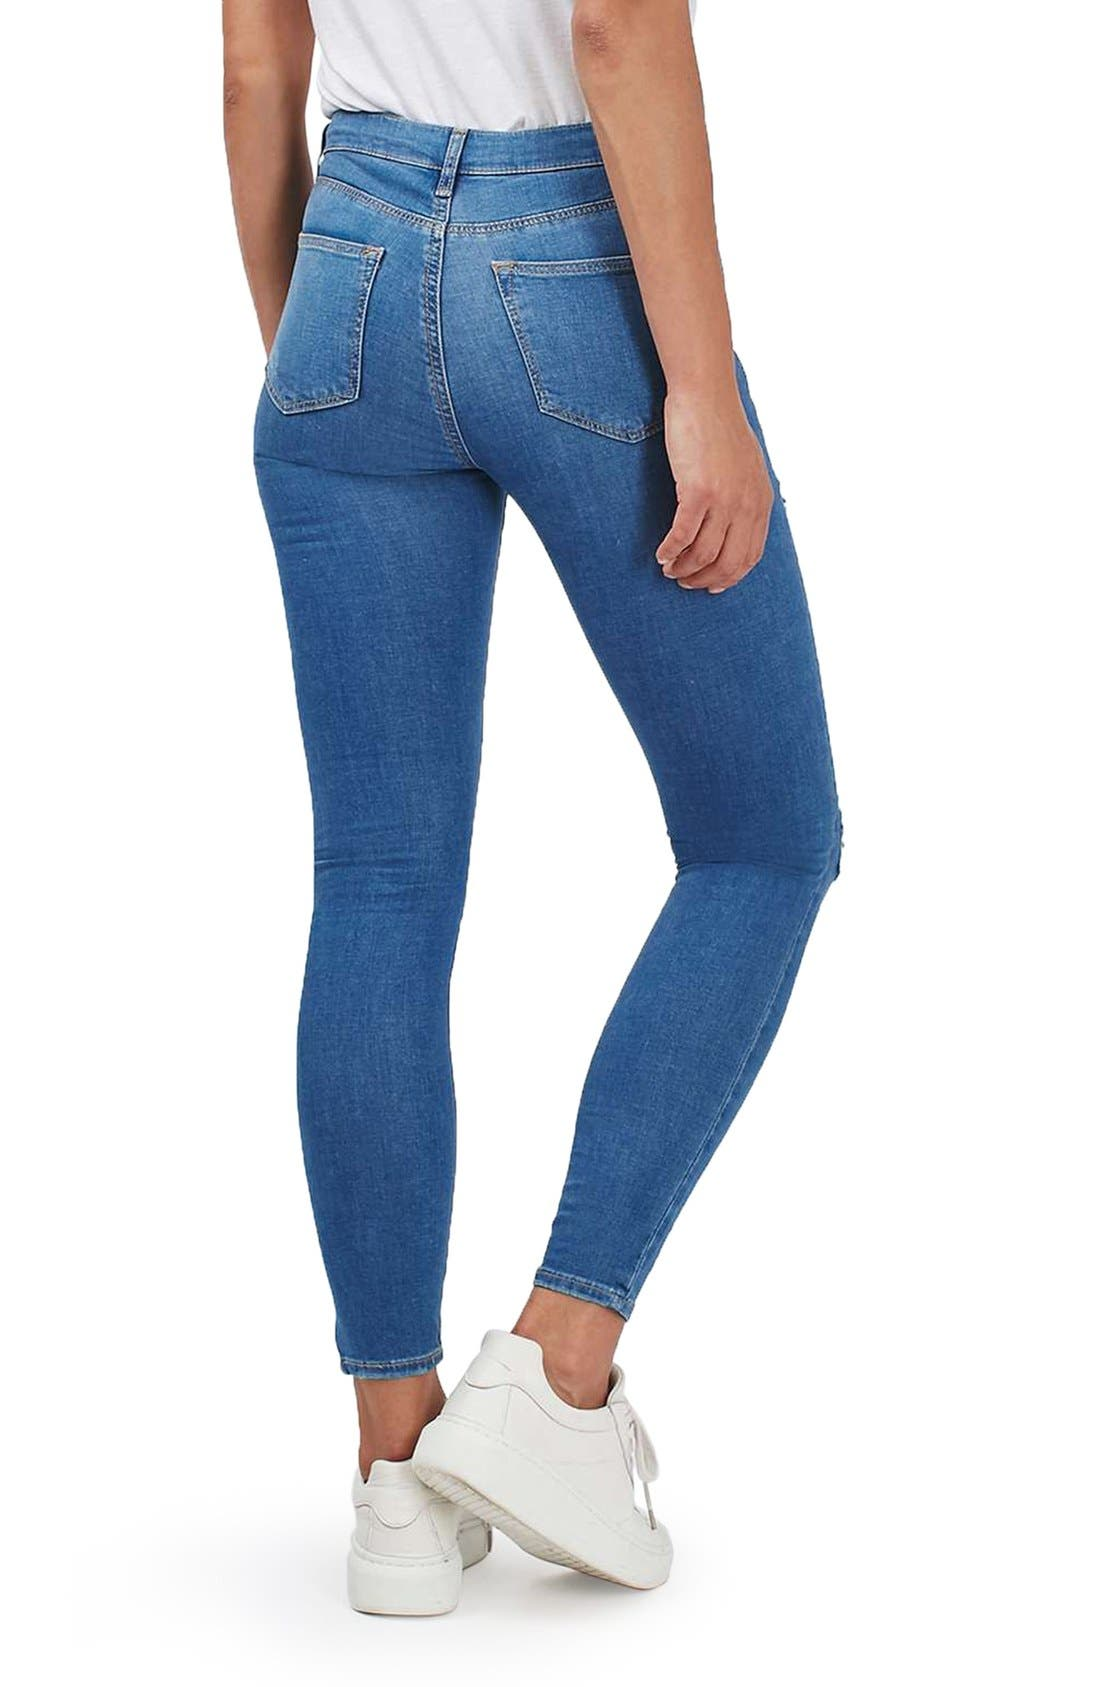 TOPSHOP, Moto Leigh Super Ripped Ankle Skinny Jeans, Alternate thumbnail 2, color, 400